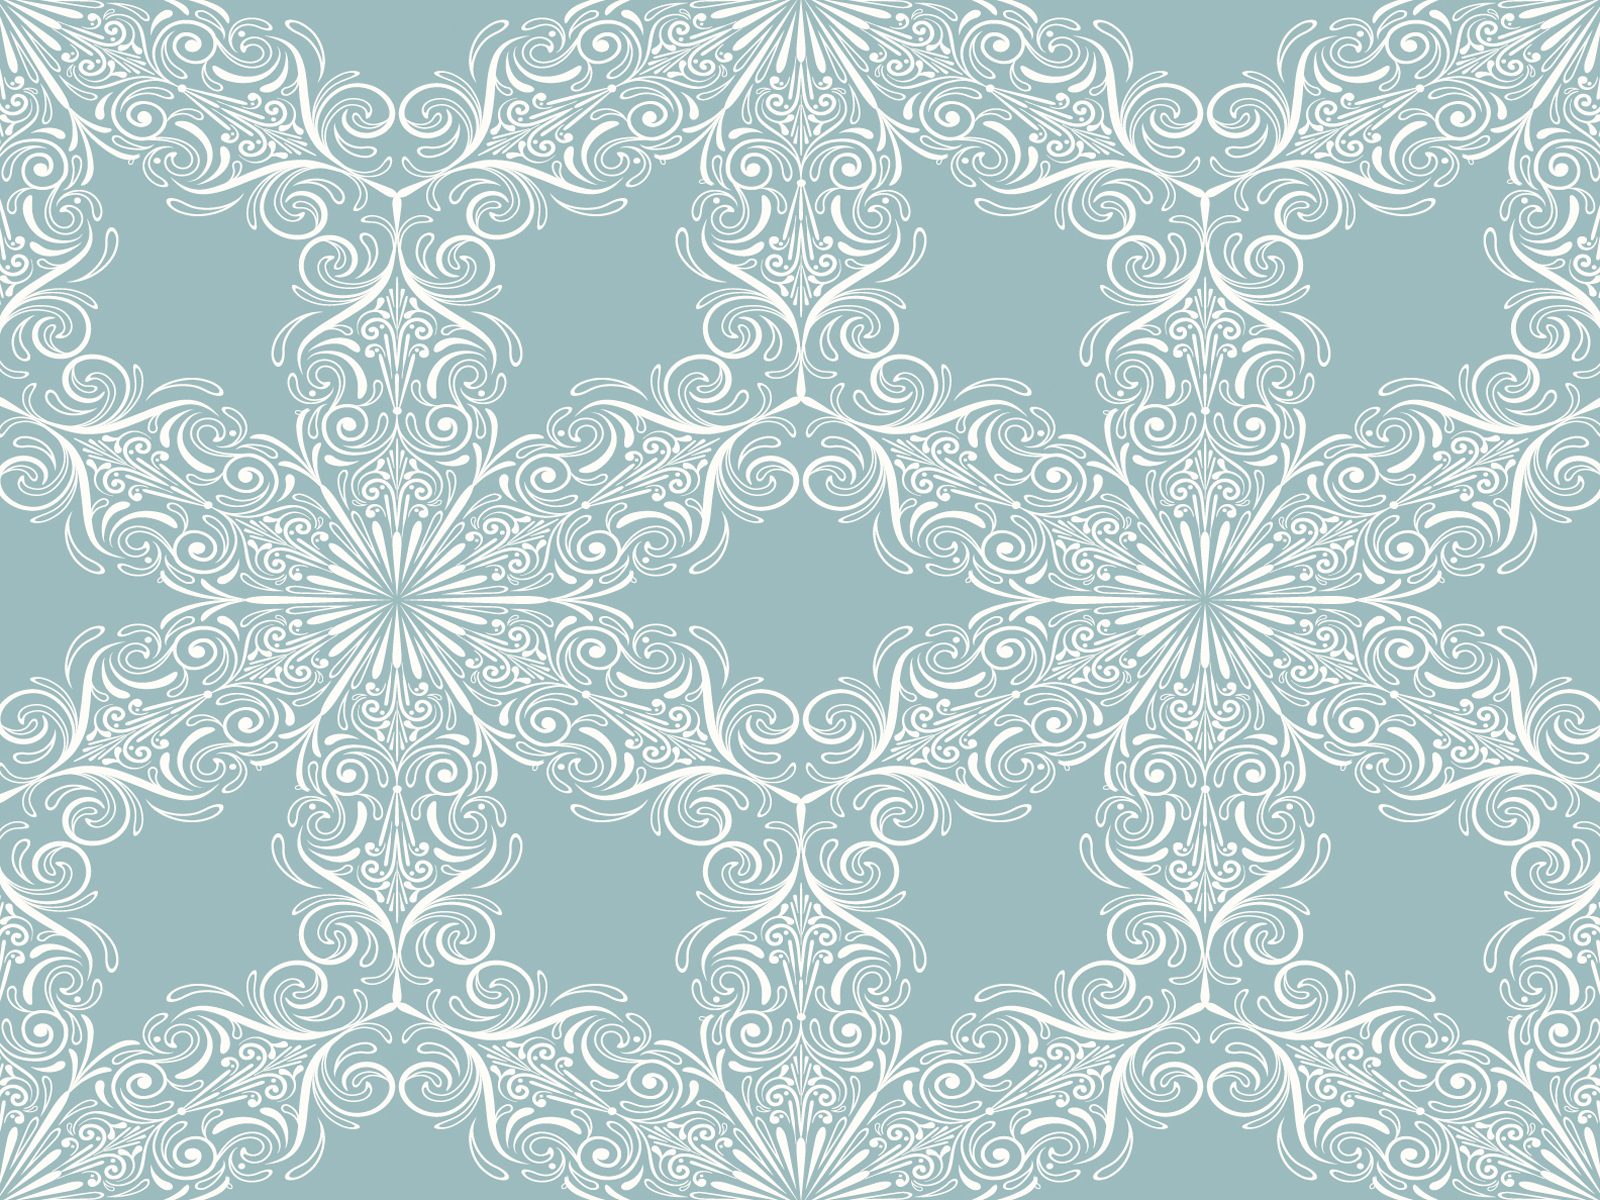 Decoration pattern slideshow ppt backgrounds pattern for Background decoration